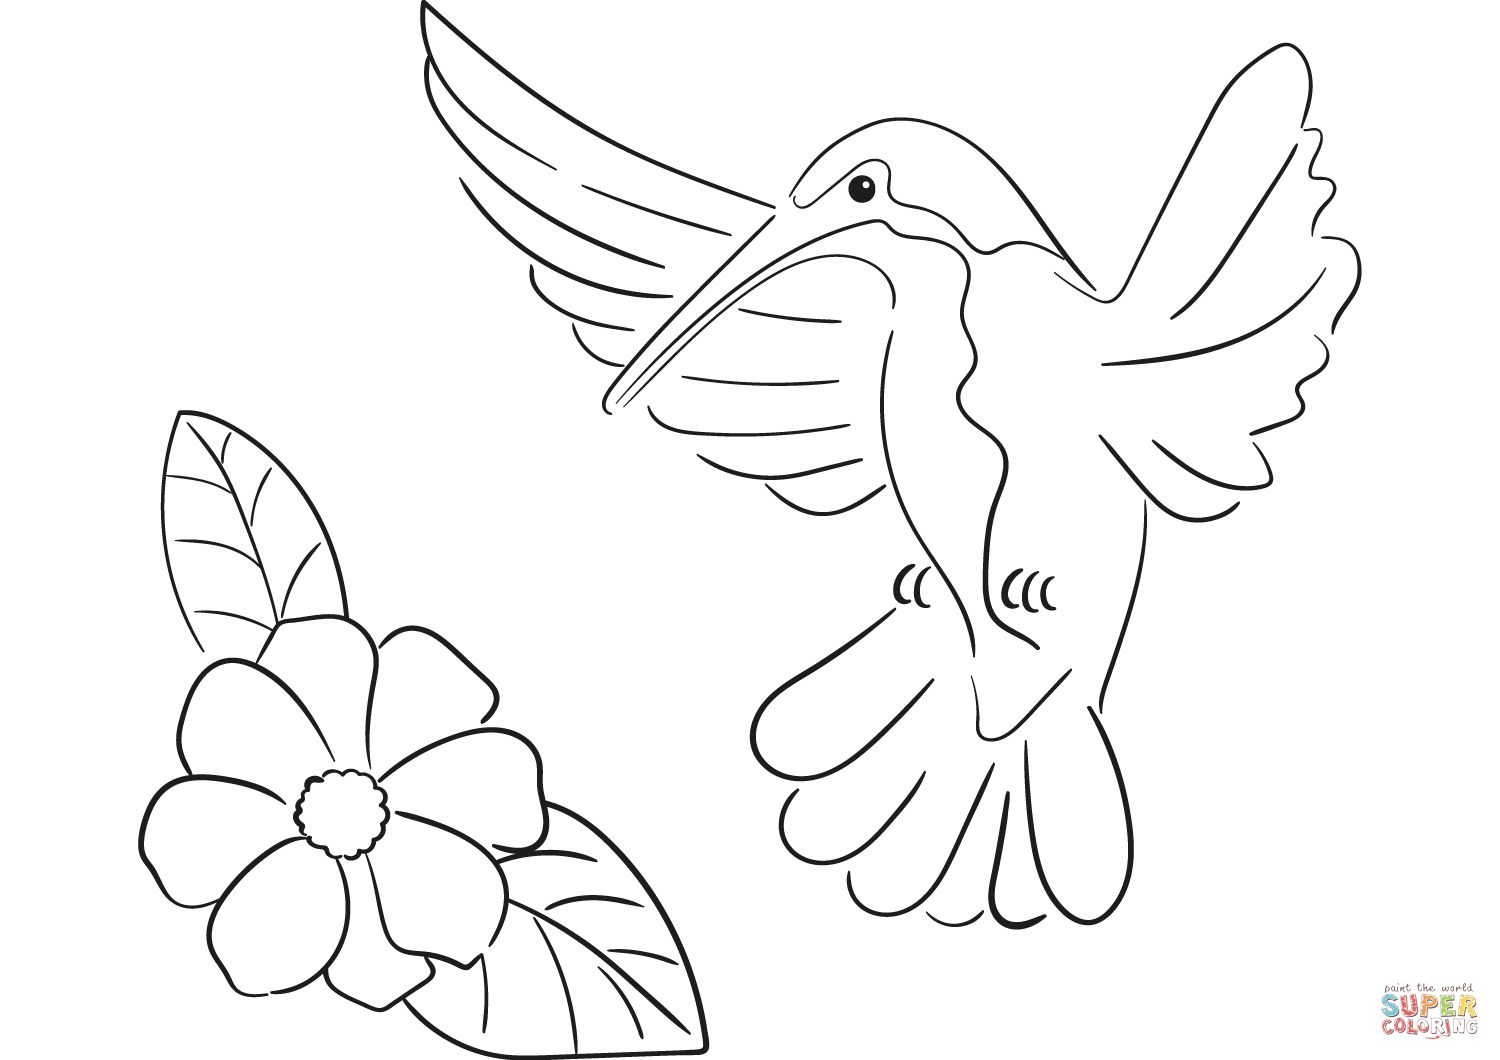 coloring pictures of hummingbirds hummingbird coloring page free printable coloring pages hummingbirds pictures of coloring